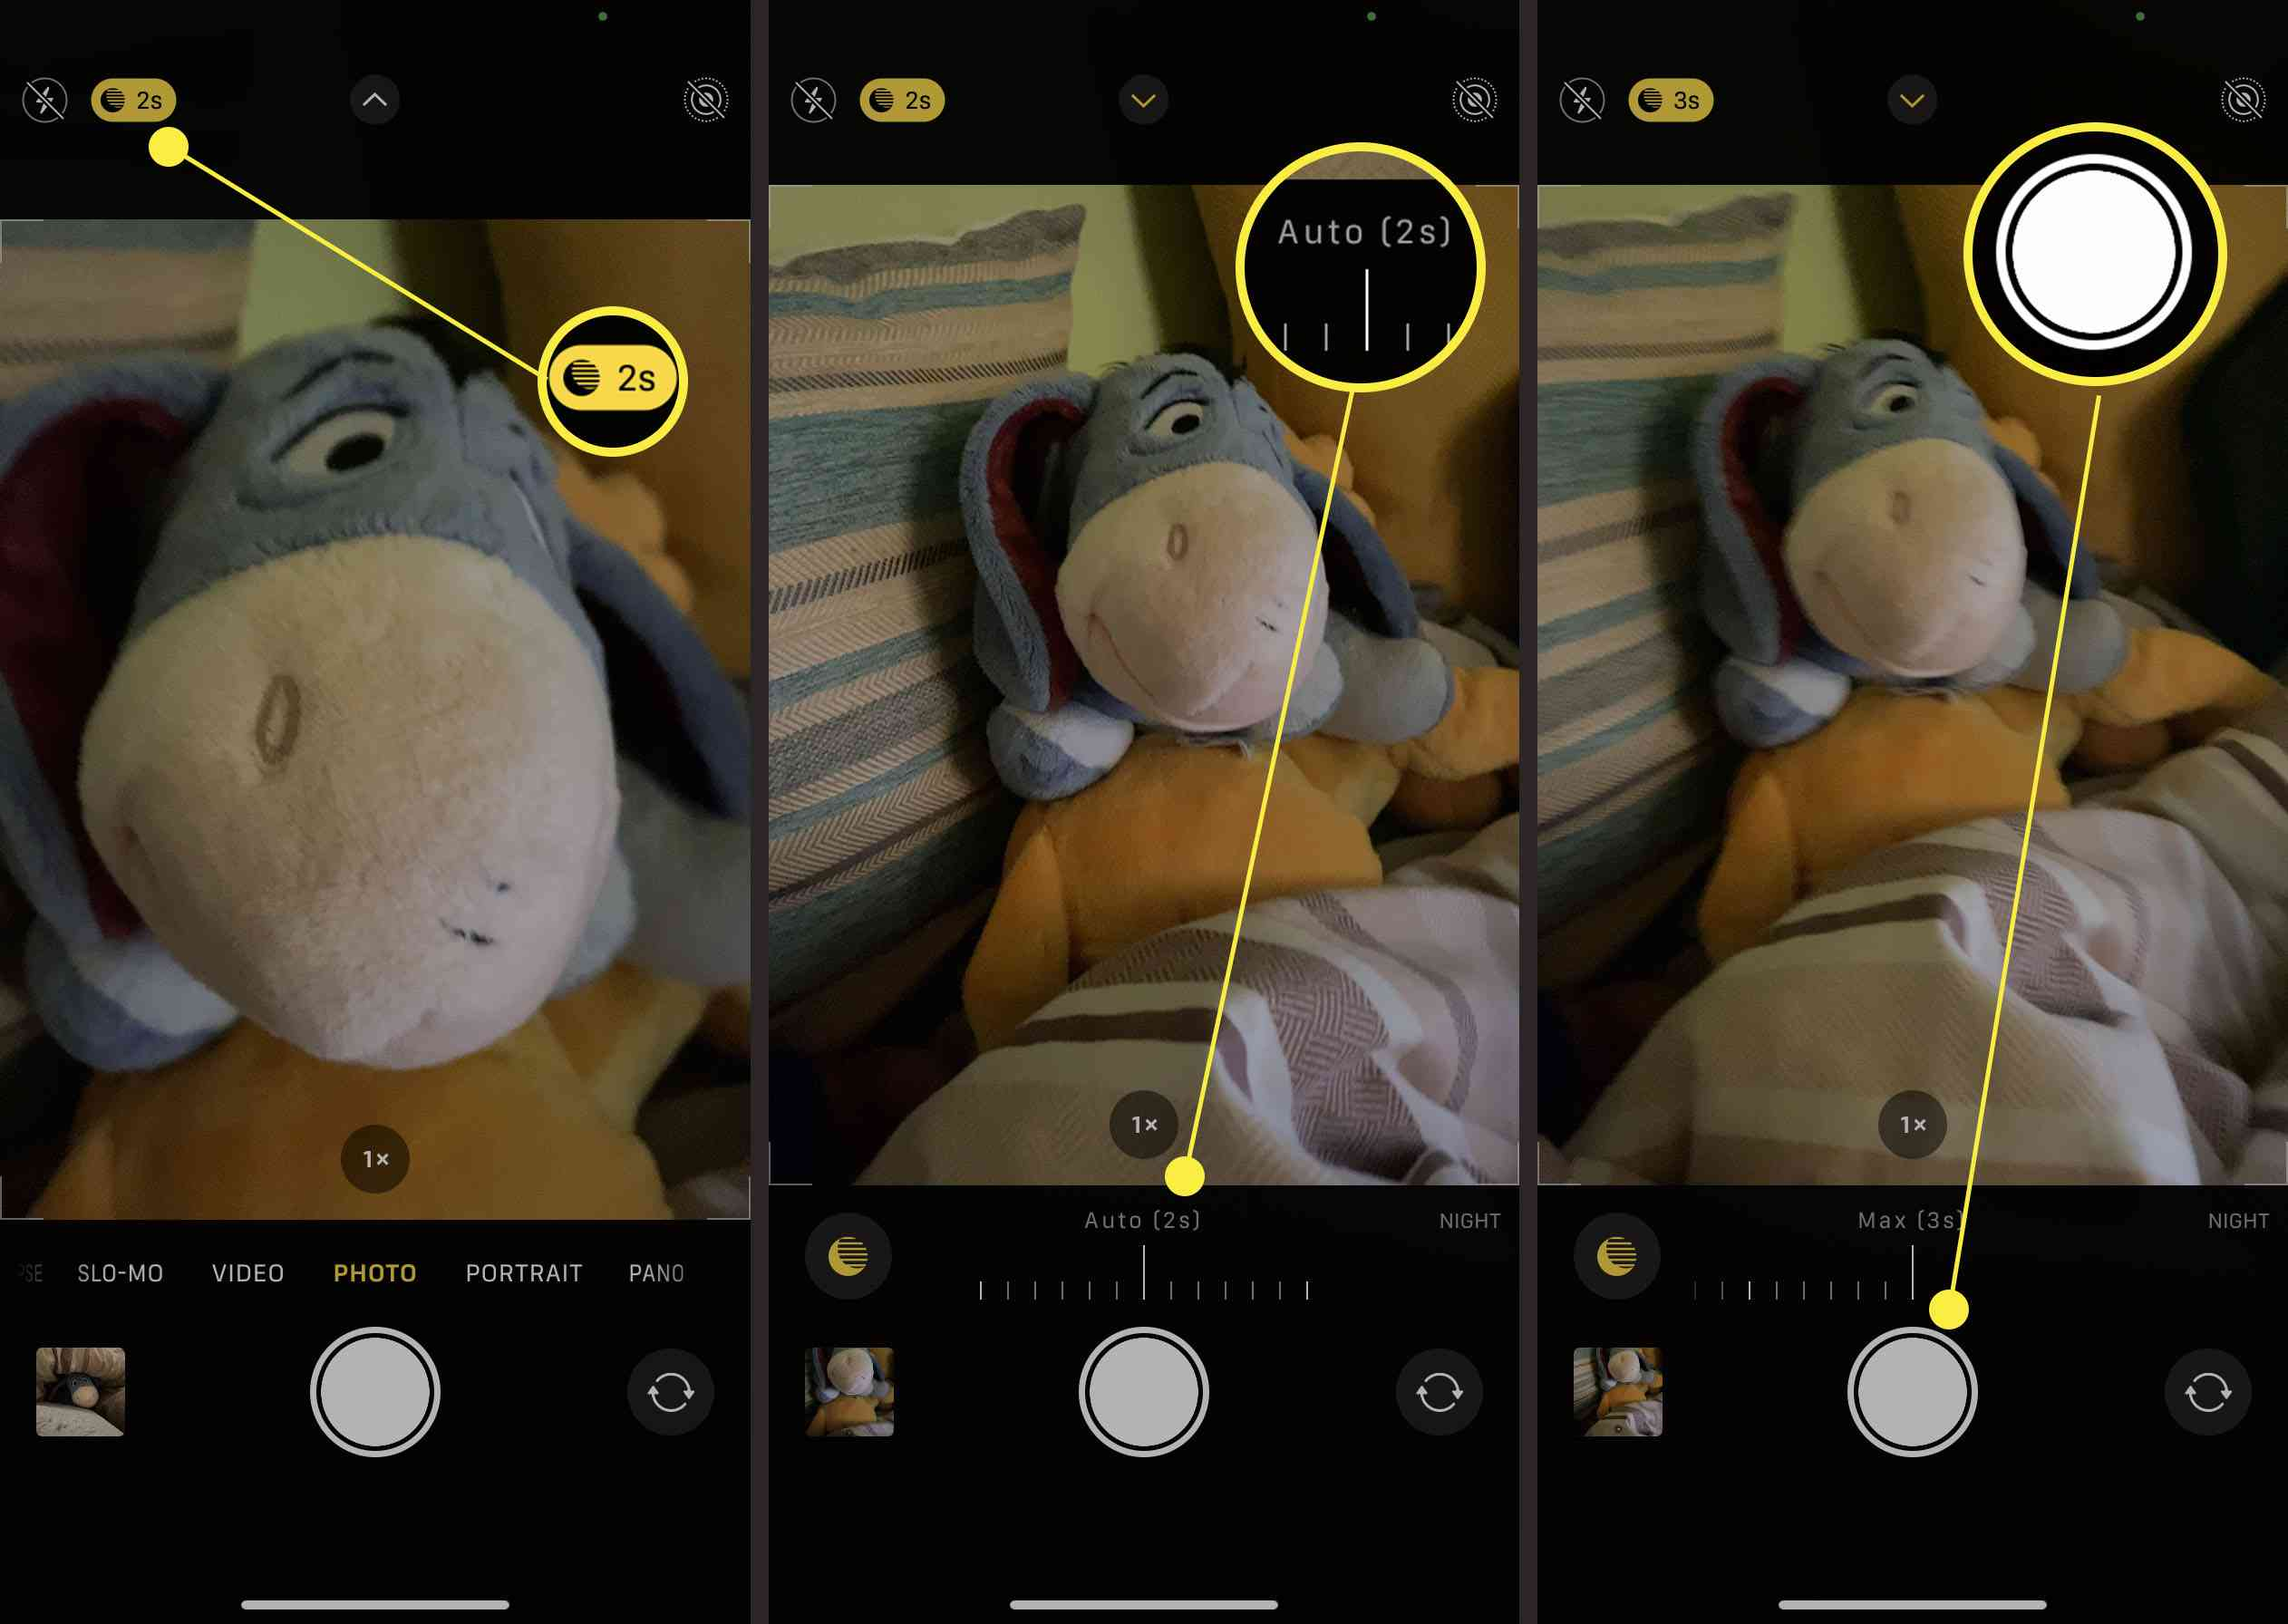 Steps required to manually adjust Night mode on an iPhone camera